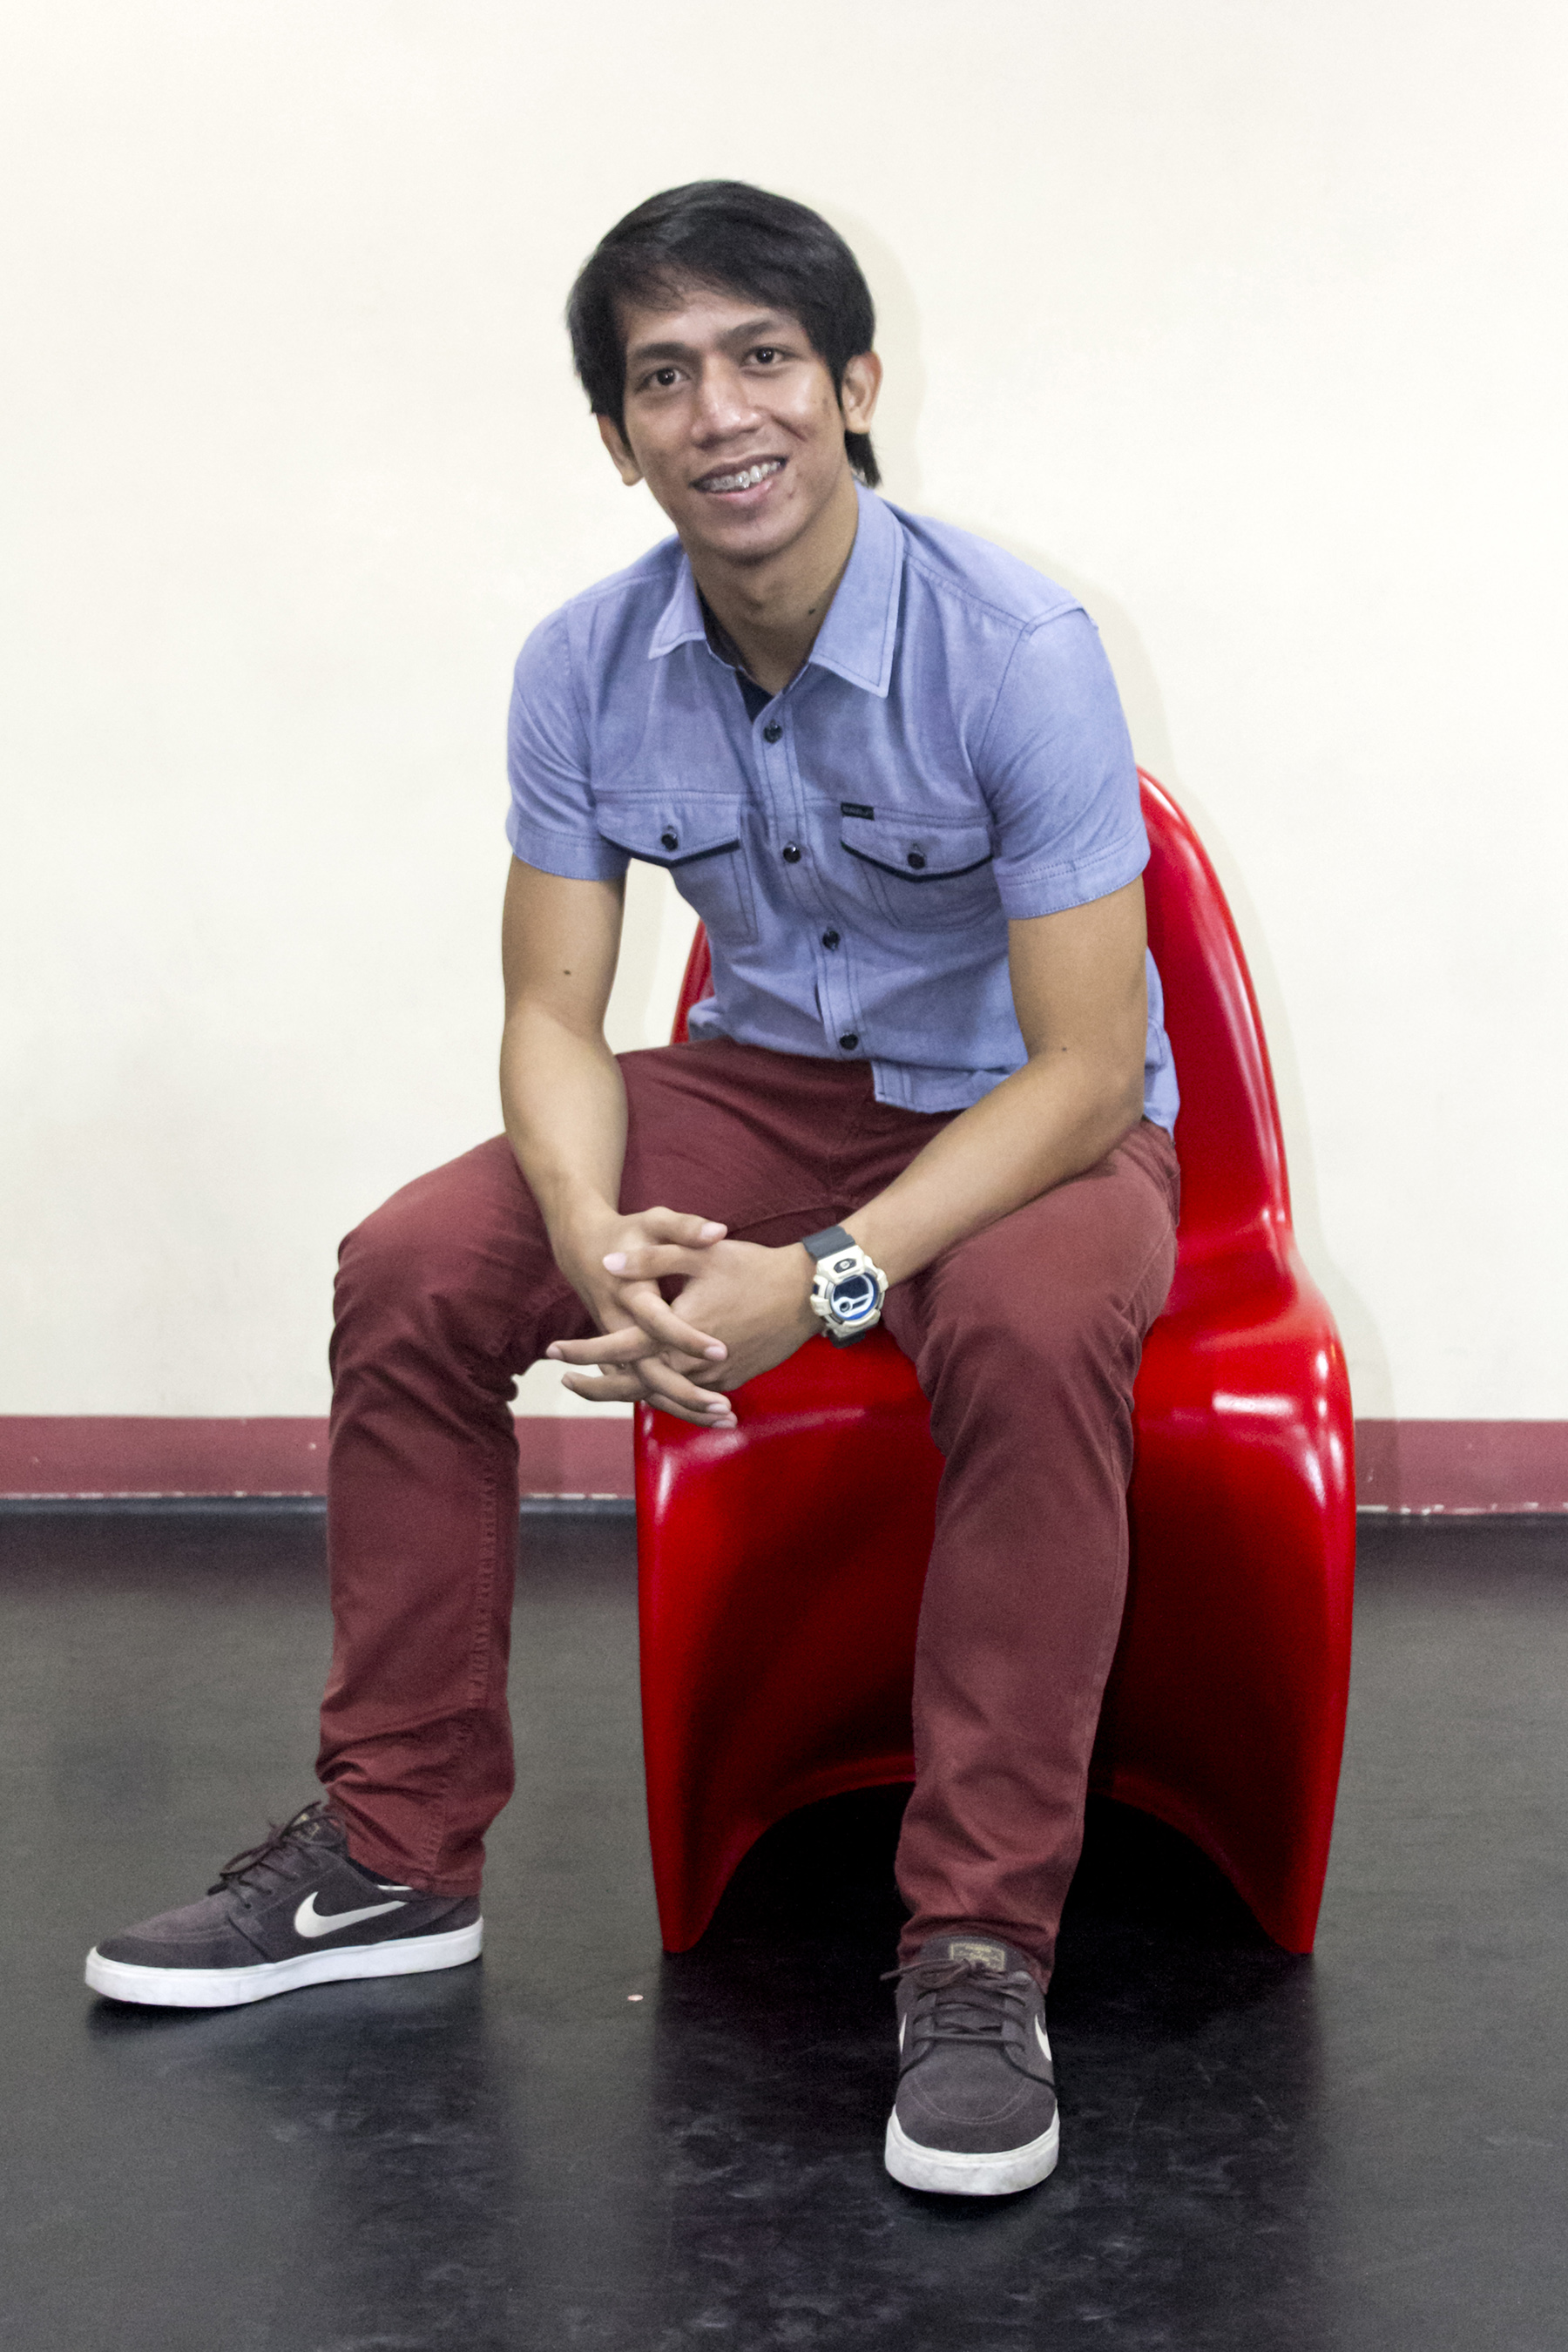 Rudolph Capongcol says laziness has no place in ballet. Photo by Jimmy Villanueva